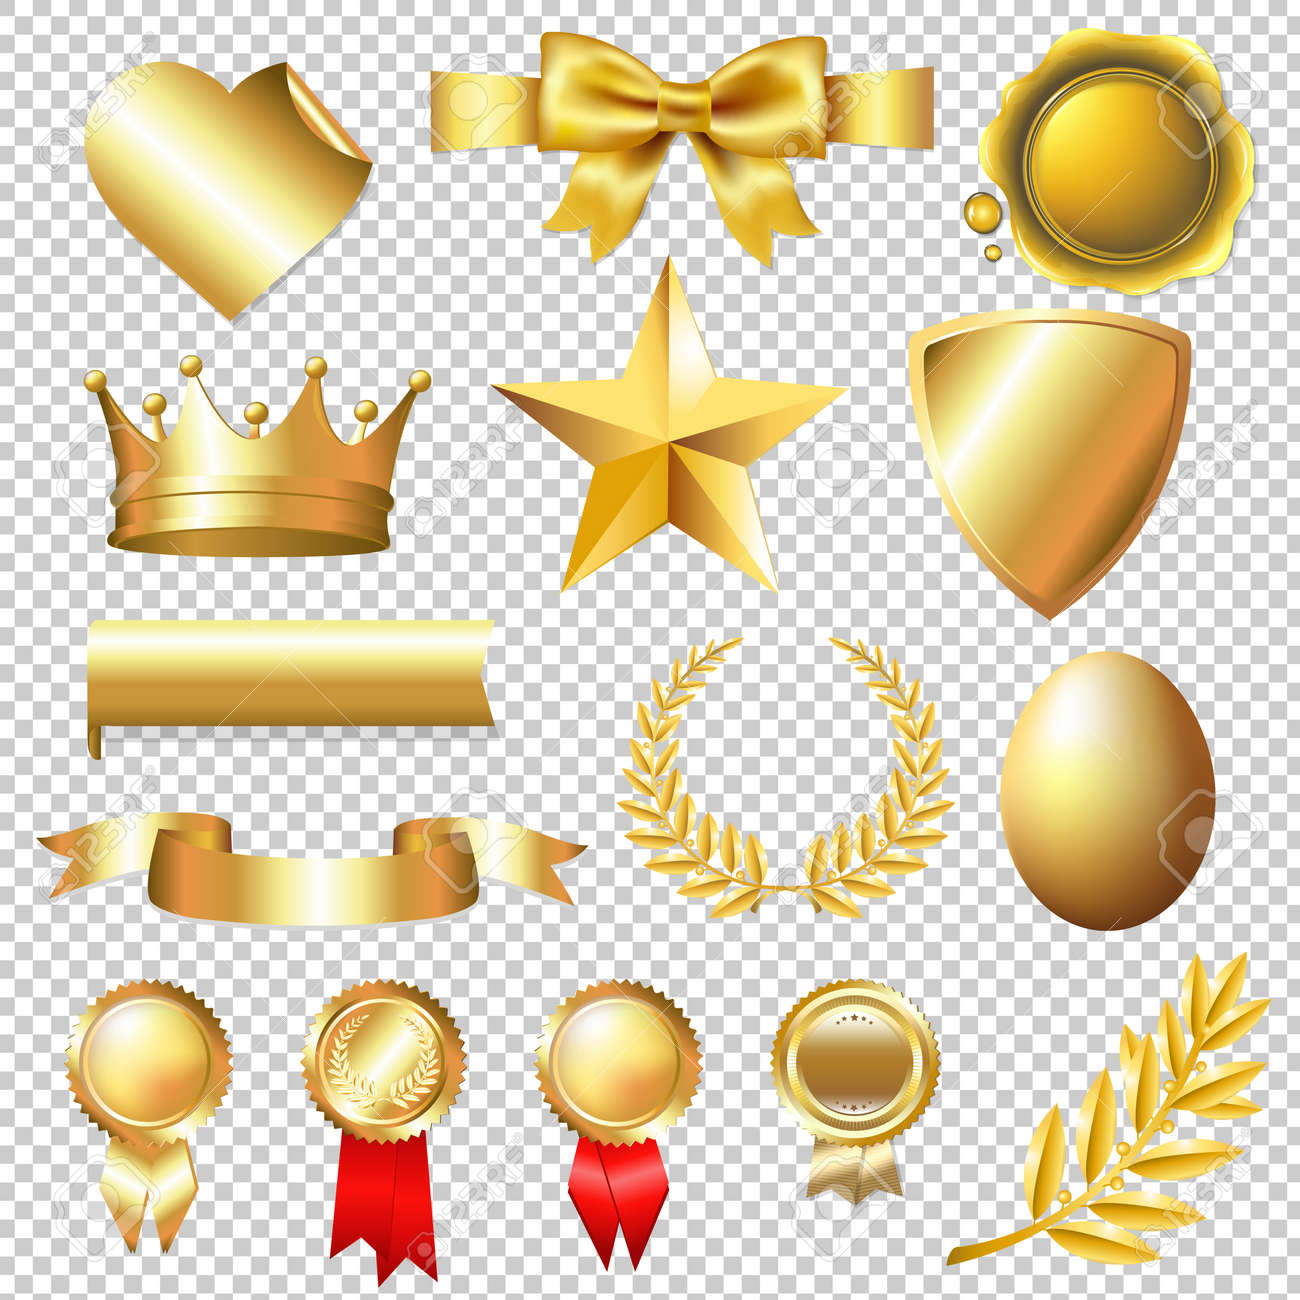 Golden Collection, Isolated on Transparent Background, With Gradient Mesh, Vector Illustration - 56871598